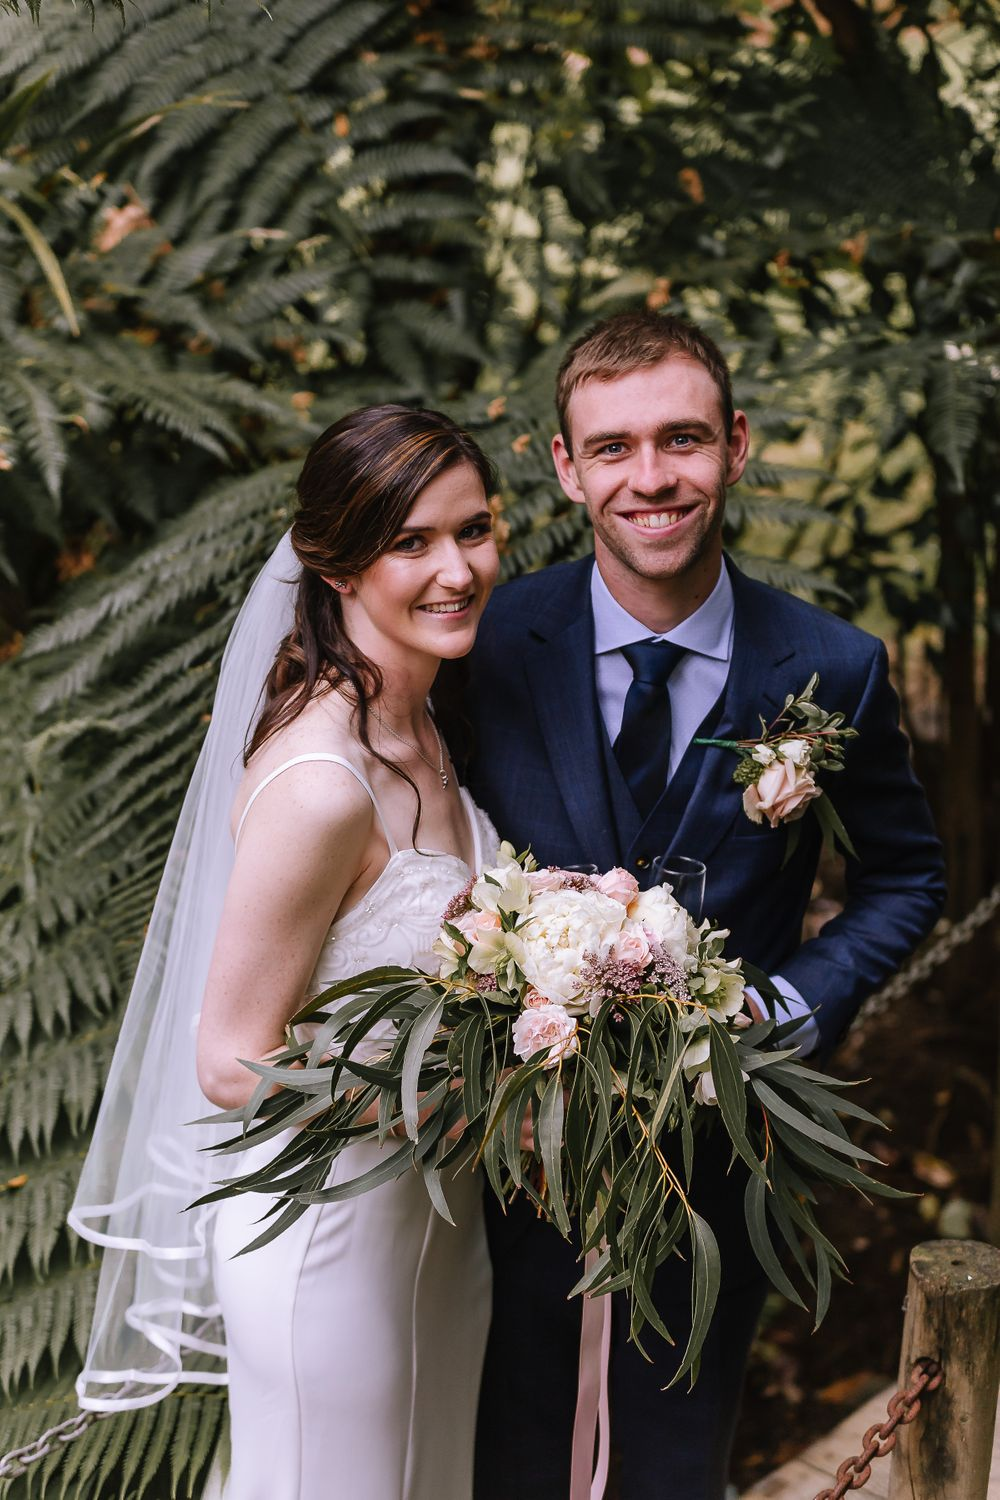 Leah and Grant Bridal Portrait - Hush Boutique Coromandel